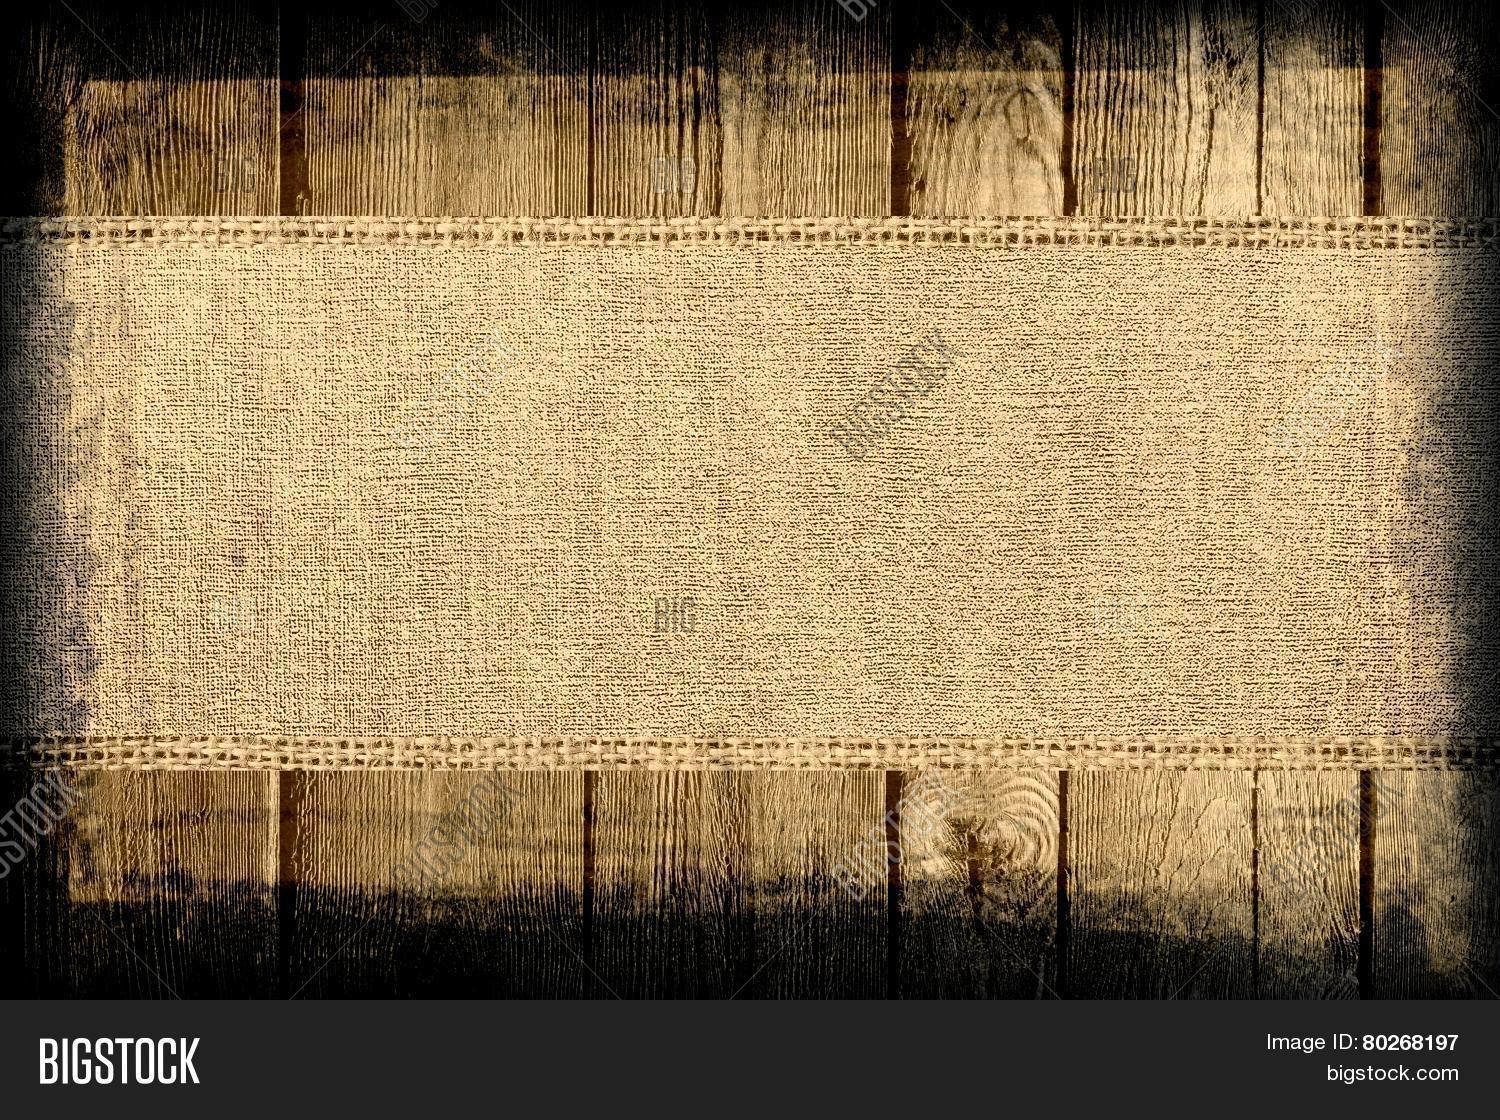 Old Grunge Rustic Canvas Banner Image Amp Photo Bigstock